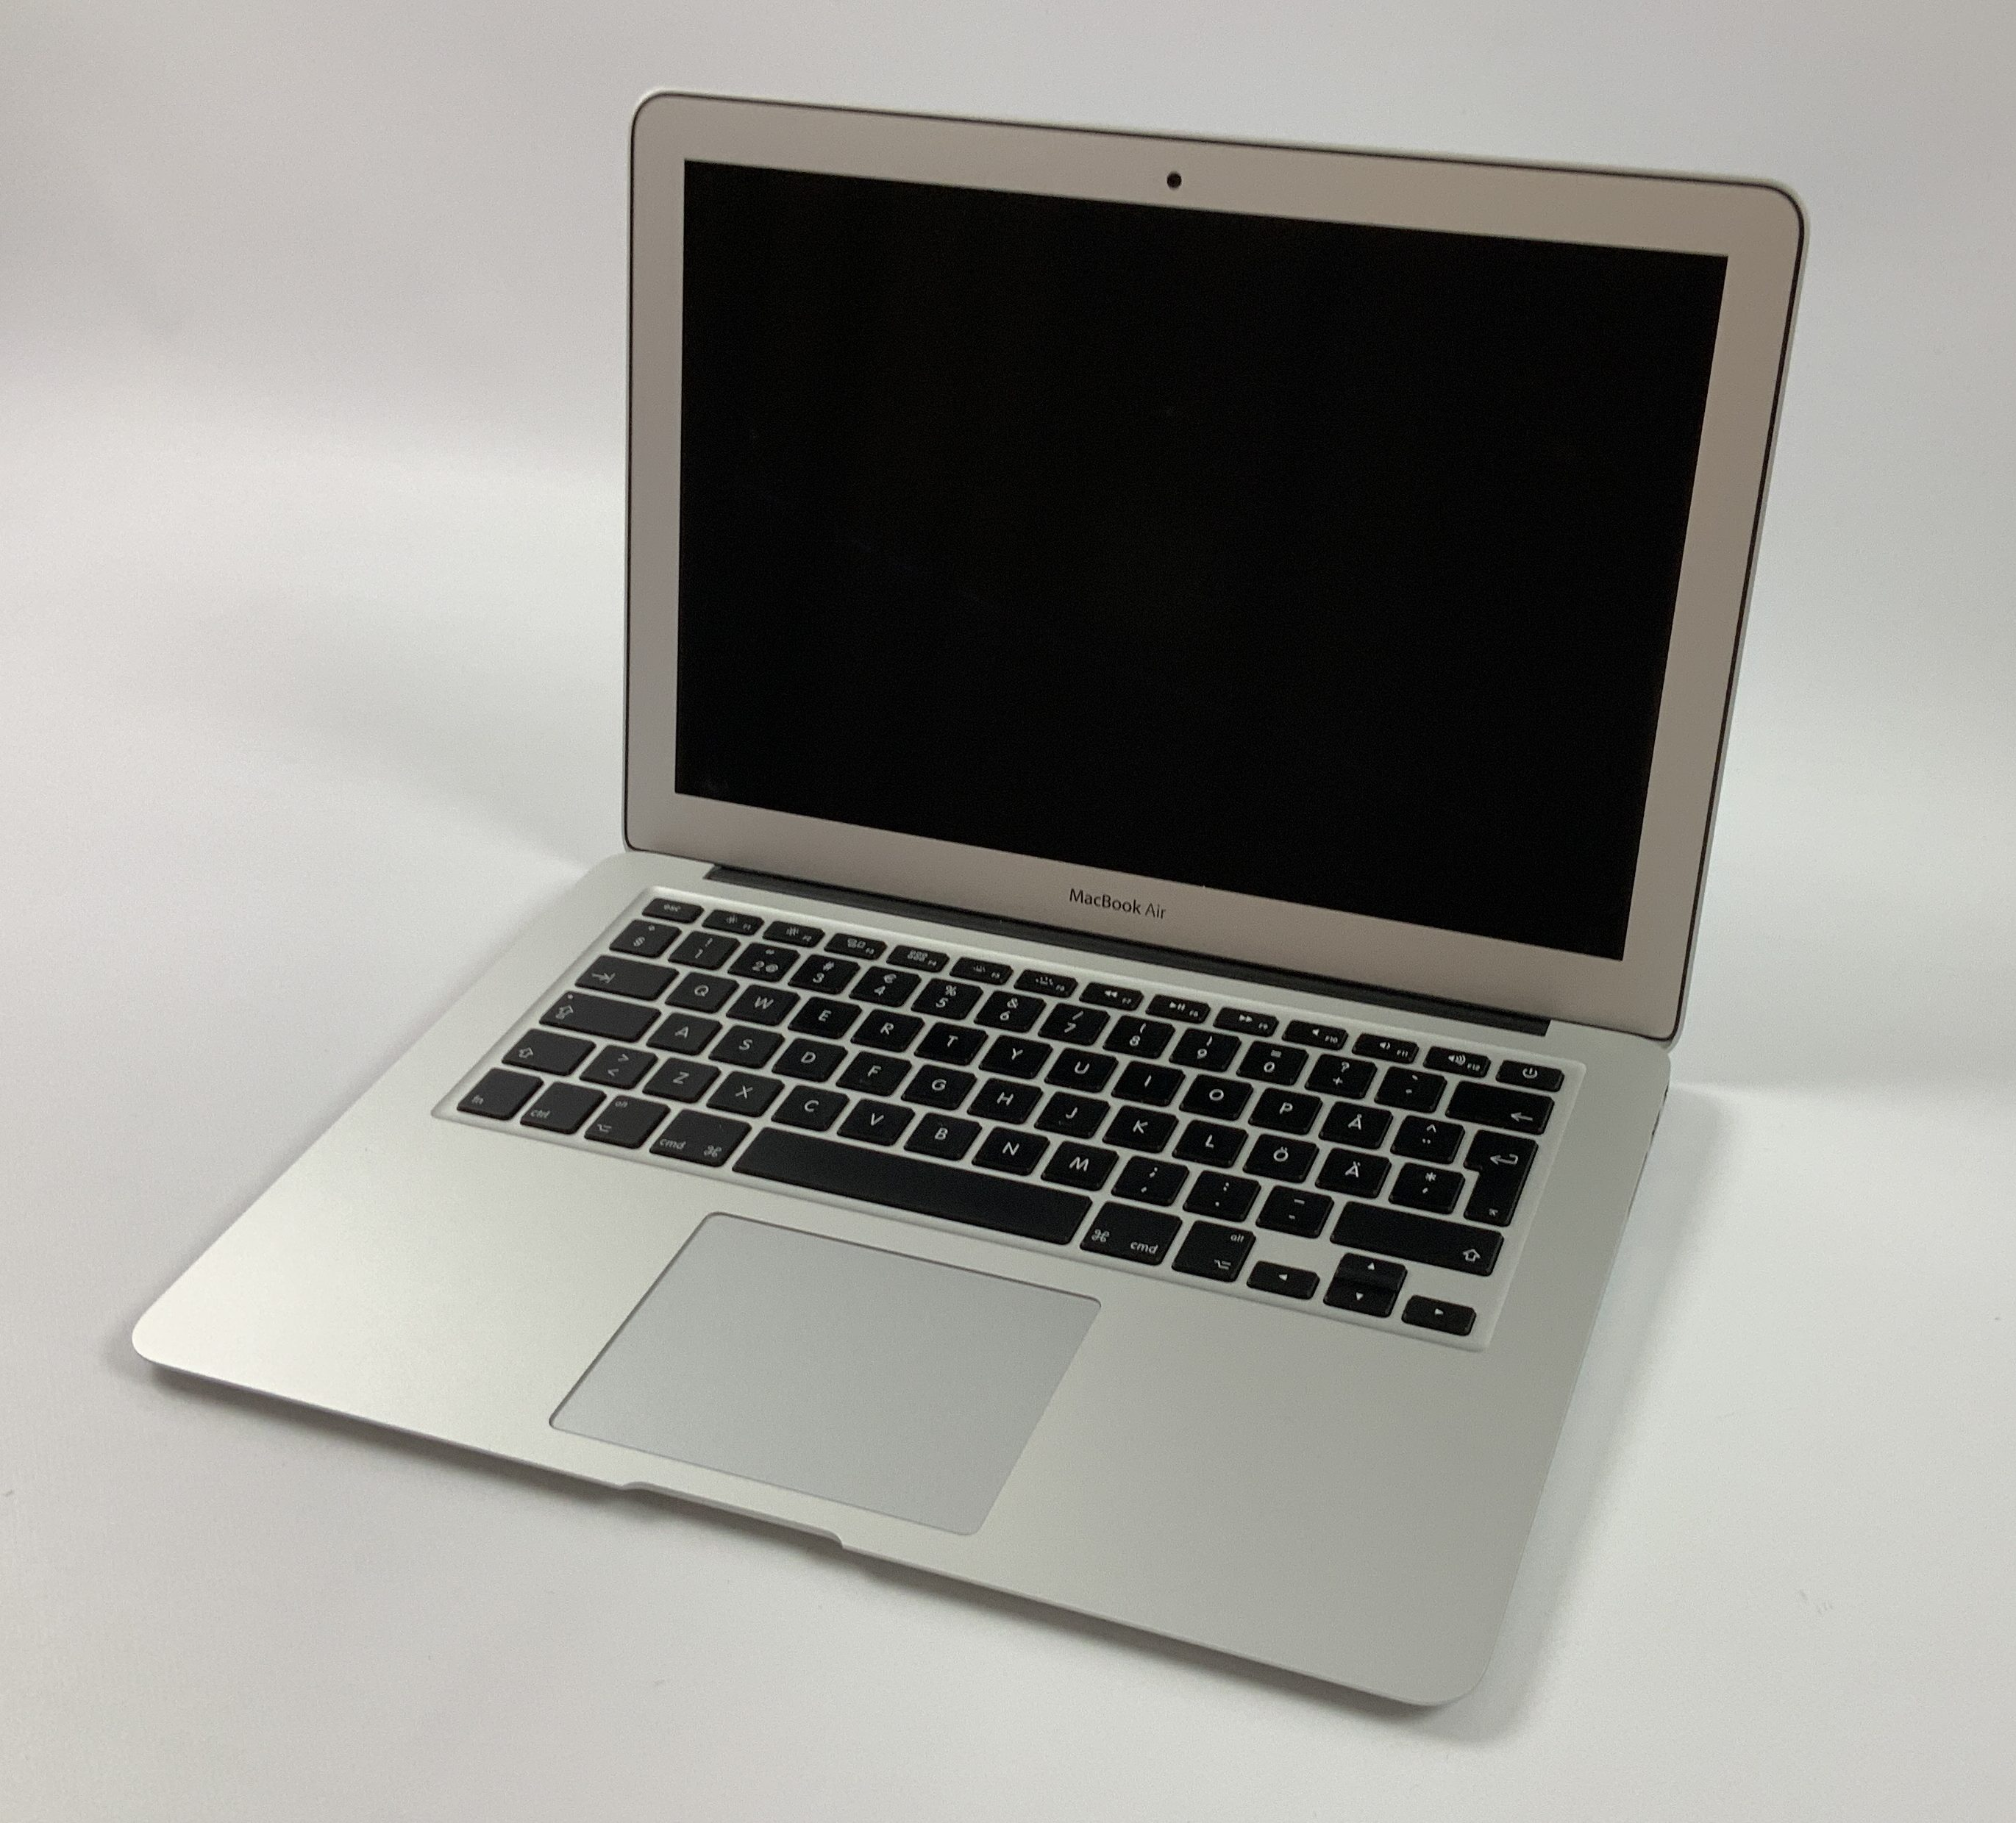 "MacBook Air 13"" Early 2015 (Intel Core i5 1.6 GHz 8 GB RAM 256 GB SSD), Intel Core i5 1.6 GHz, 8 GB RAM, 256 GB SSD, Afbeelding 1"